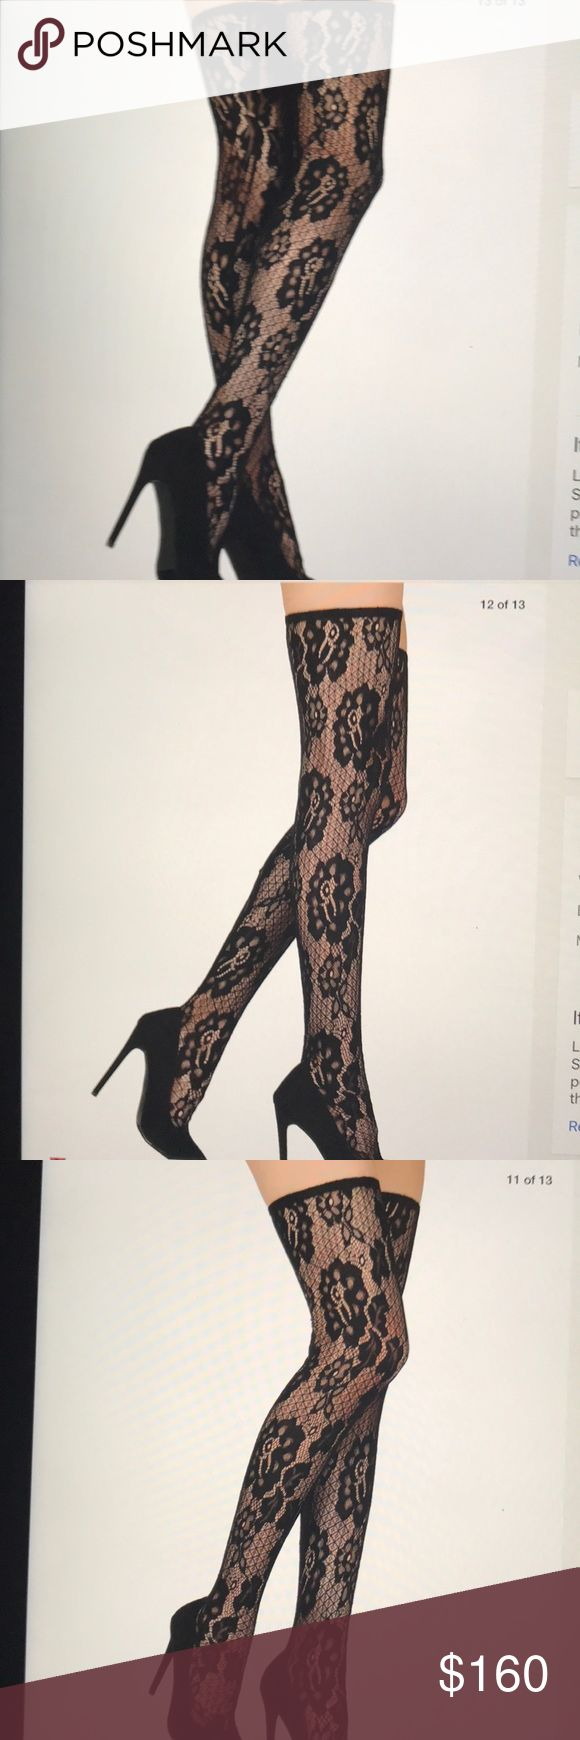 "BLACK LACE THIGH HIGHS SZ 9 NEW NEVER WORN GORGEOUS LACE THIGH HIGH BOOT/SHOE SZ 9 Get the look of the over $1,000 for a 1/4 or less the price!  Never worn heel 4.25"" shaft with heel 27"" opening 13"" closure is slip on, no zipper or lace up and runs a smig narrow. Very VERSATILE!! Stiletto pointy toe with single sole. That covers everything 😀 Liliana Shoes Over the Knee Boots"